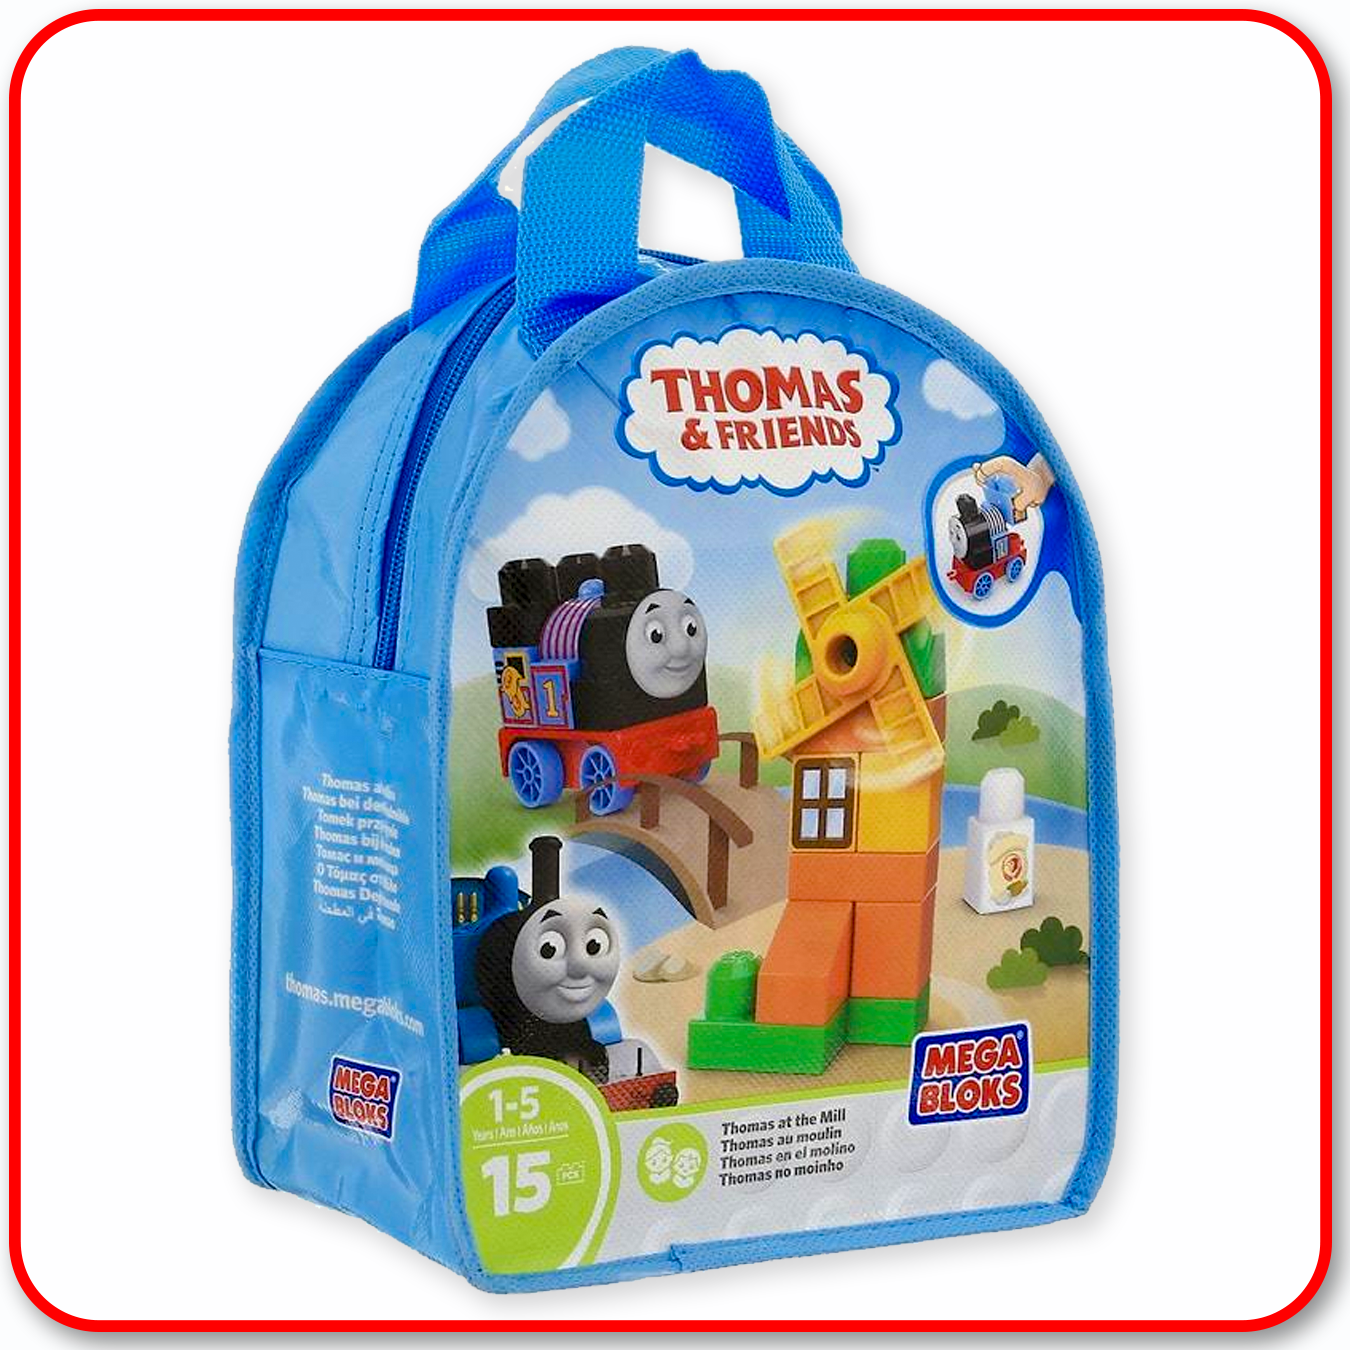 Mega Blocks - Thomas & Friends : Thomas at the Mill